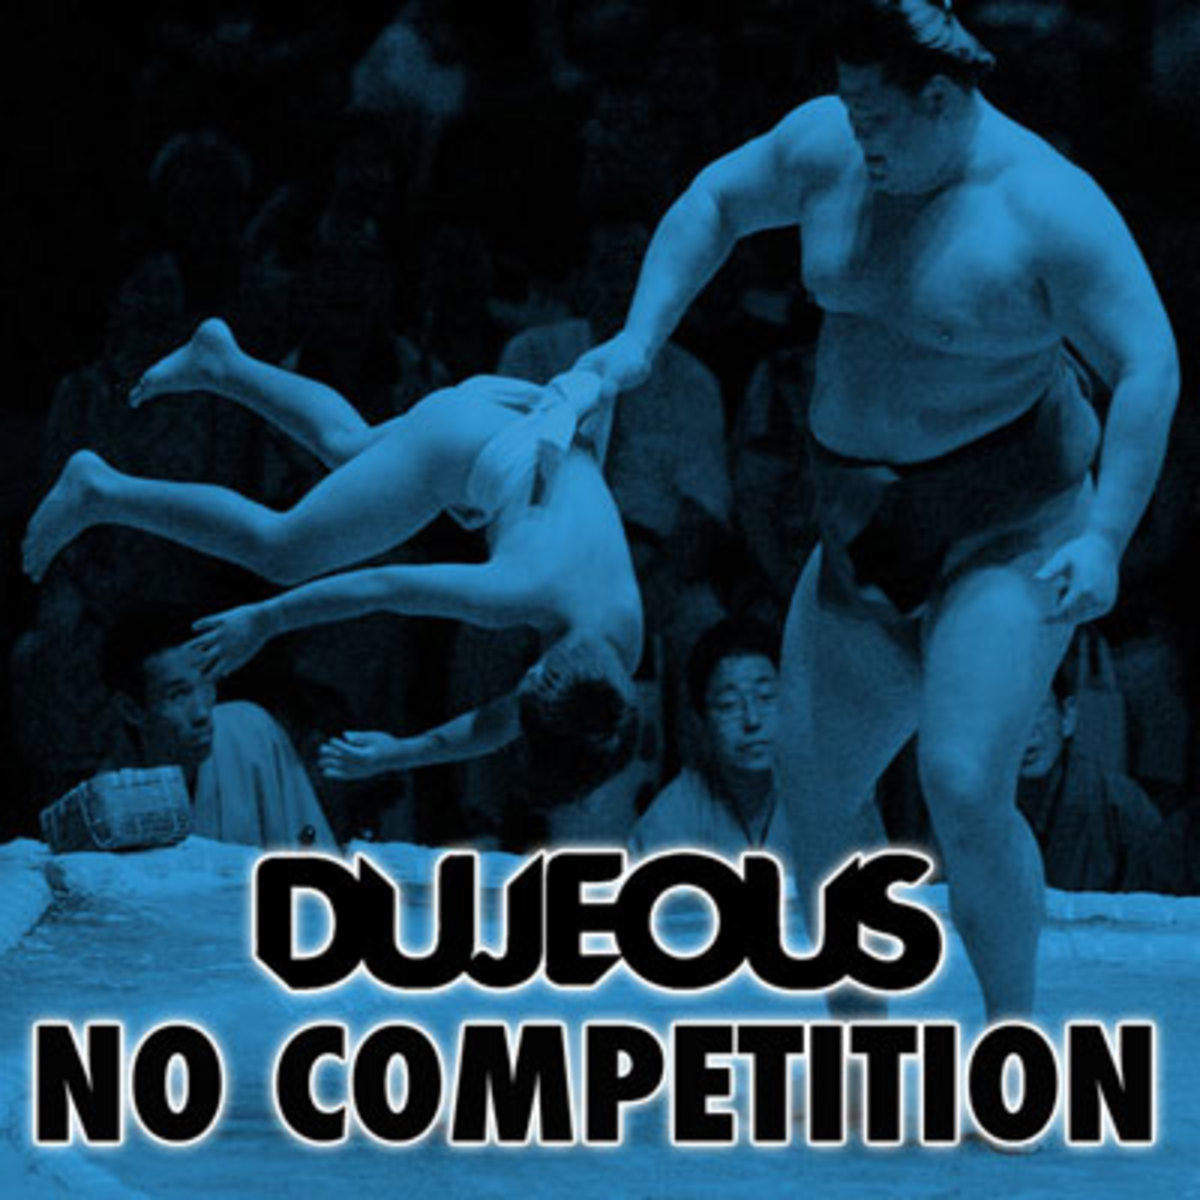 dujeous-nocompetition.jpg